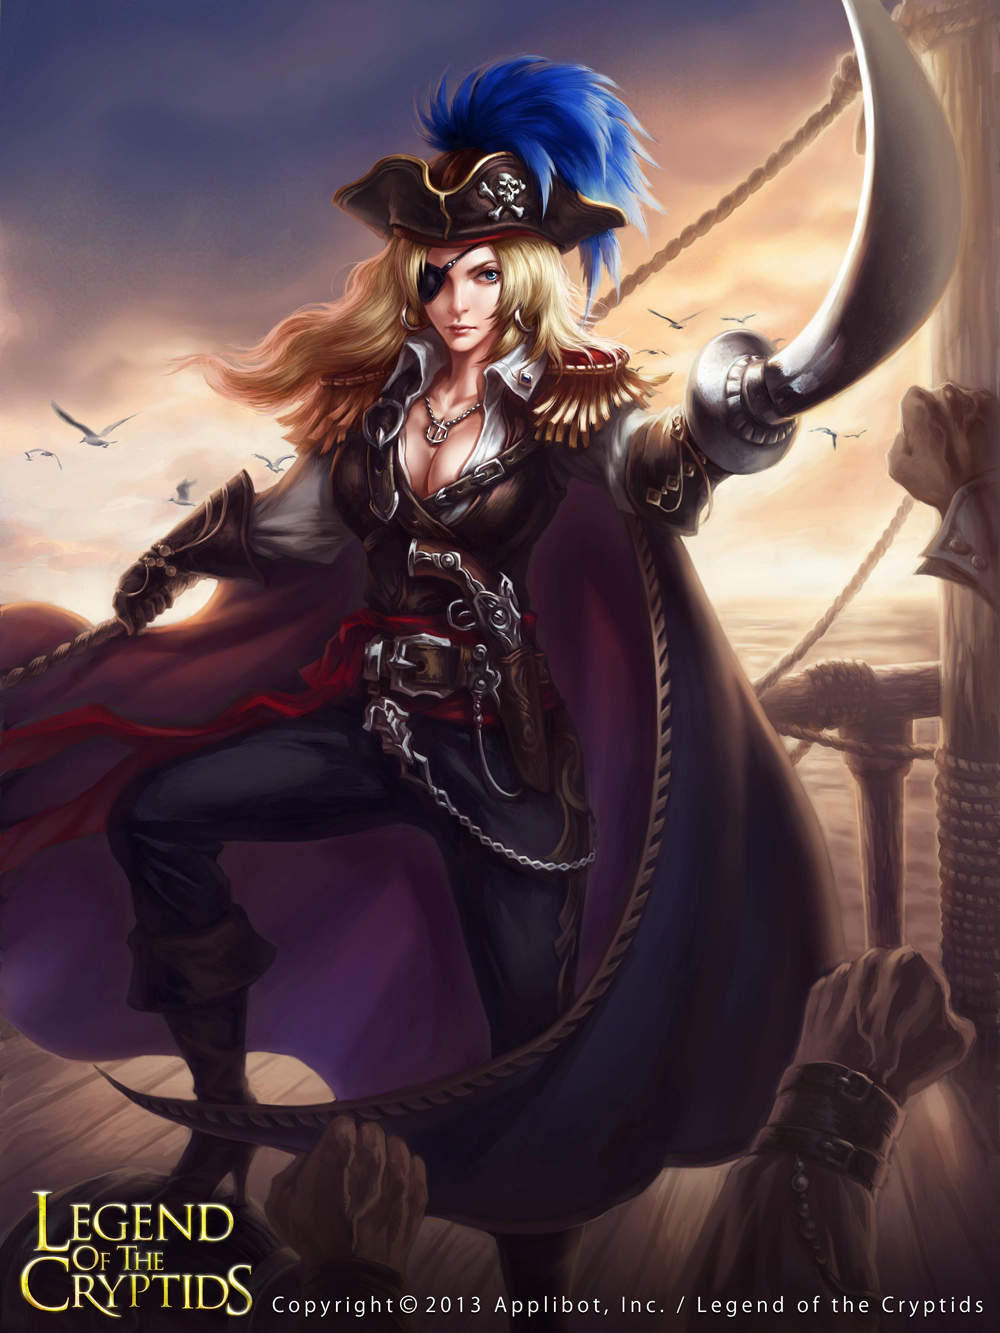 Female pirates images nsfw tube